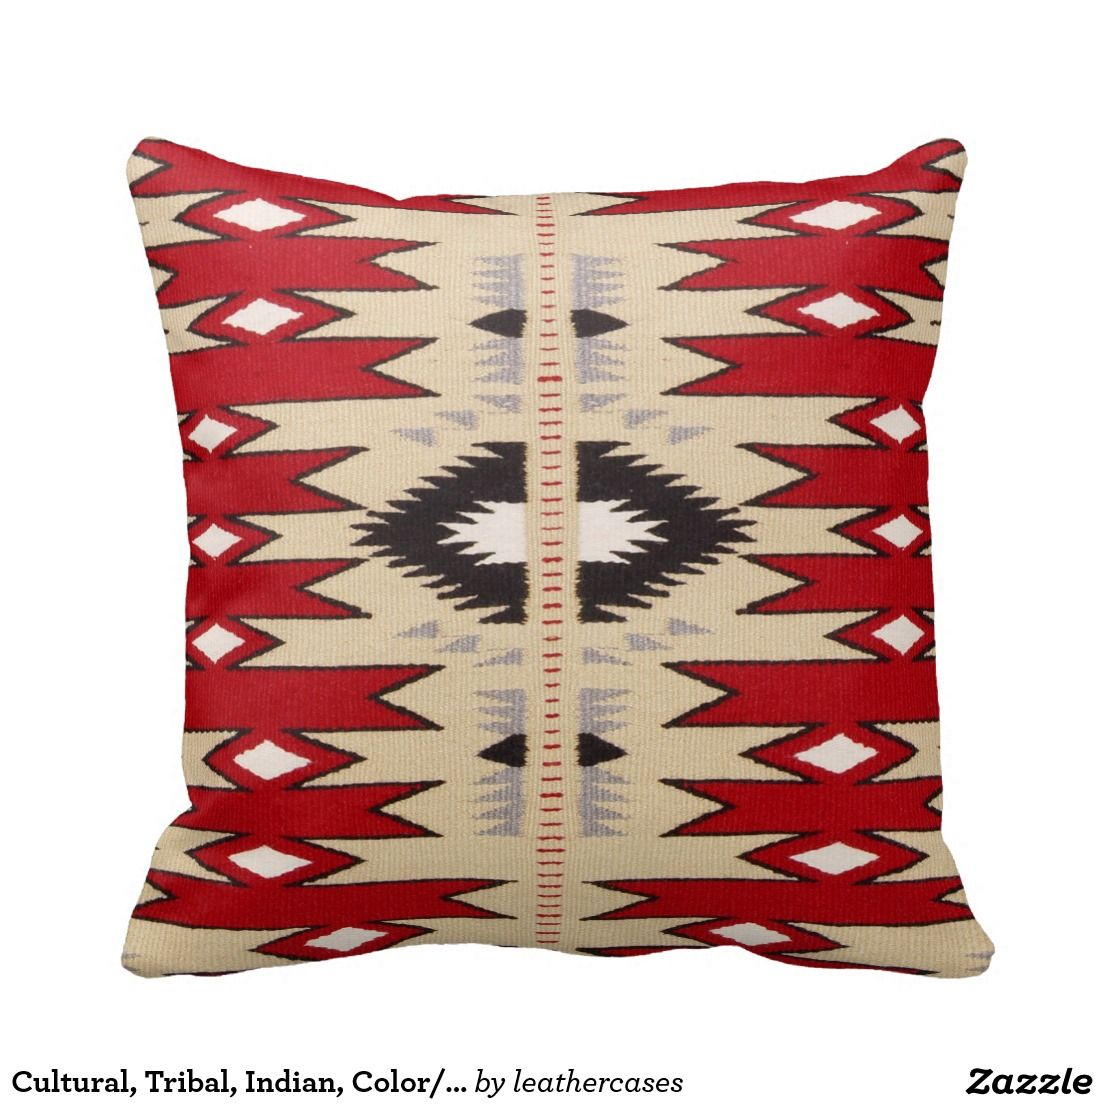 Cultural, Tribal, Indian, Color/Hue Red Print Pillows